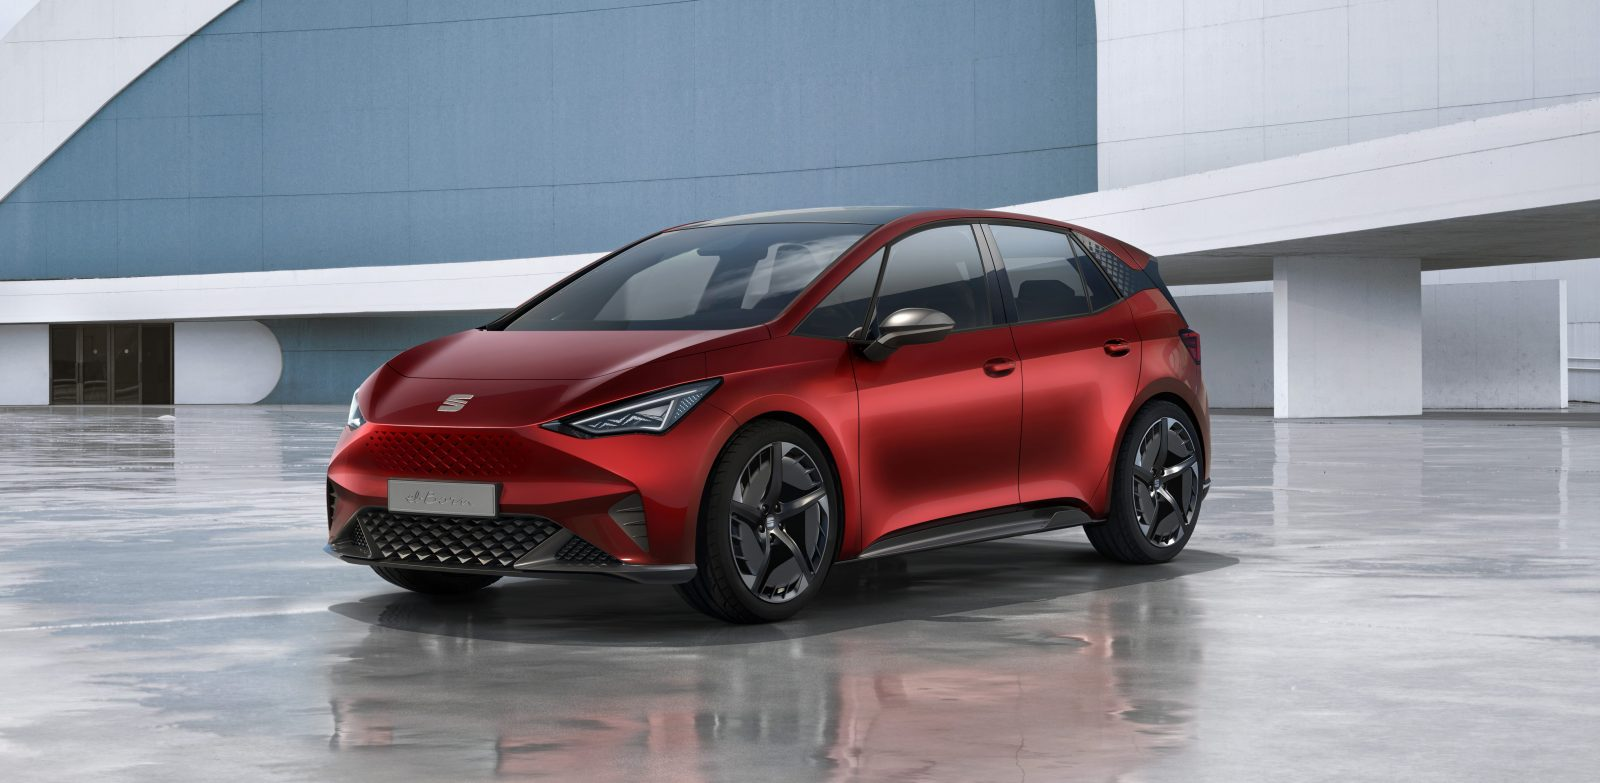 Vw S Seat Unveils Sleek New All Electric Hatchback With 260 Miles Of Range